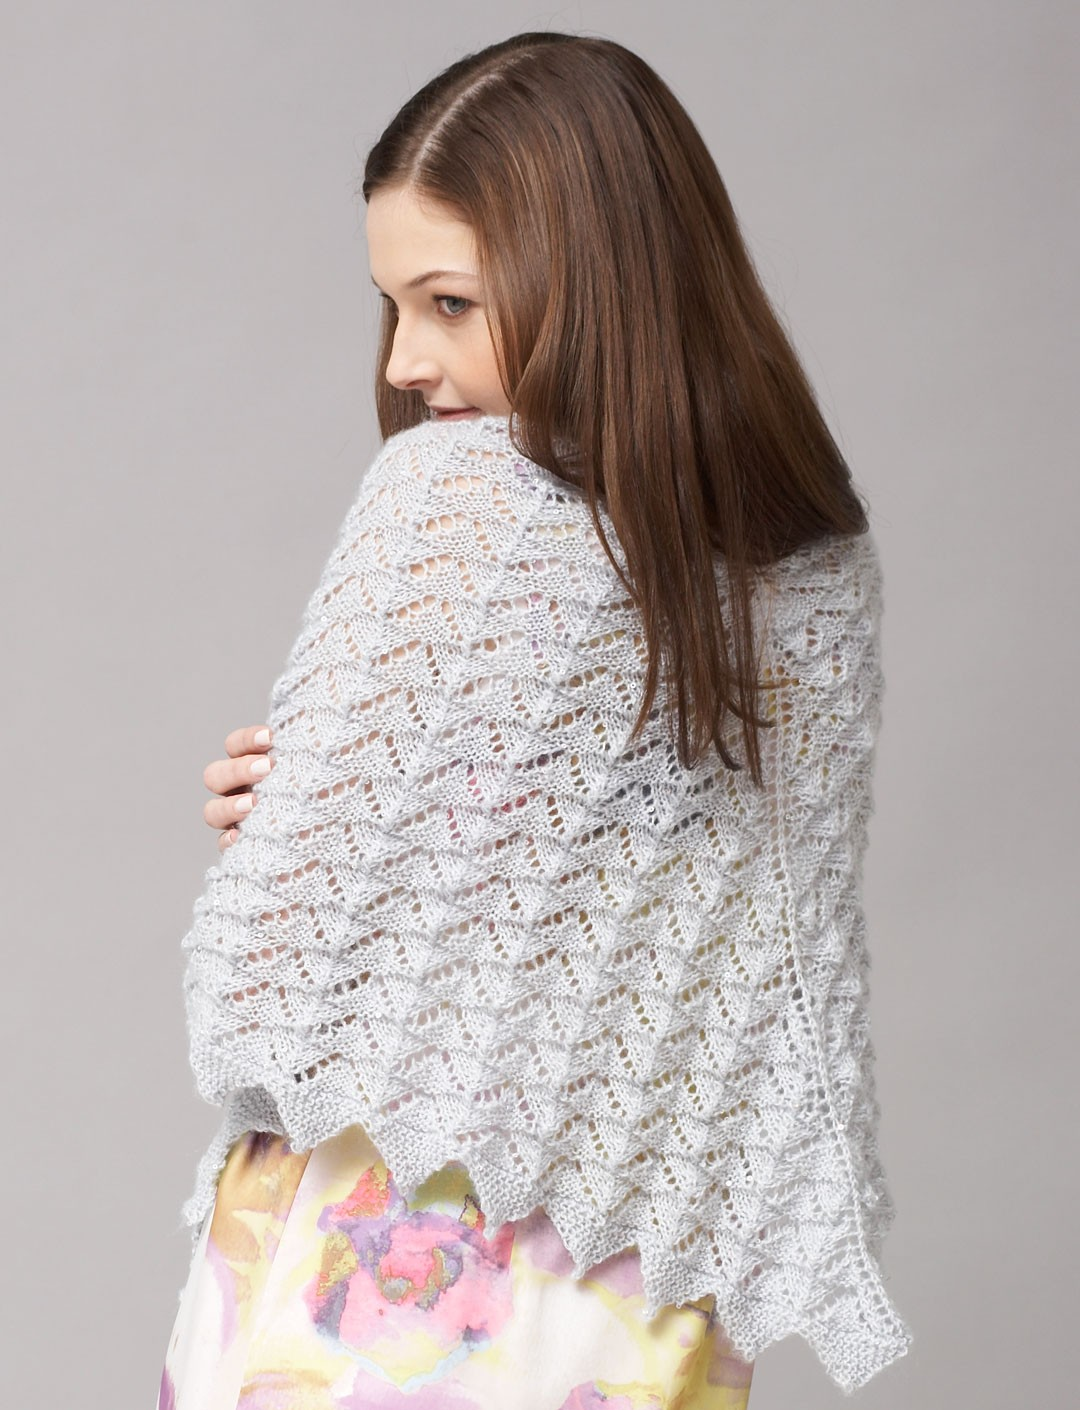 Patons Free Knitting Patterns : Patons Chevron Lace Shawl or Scarf, Knit Pattern Yarnspirations